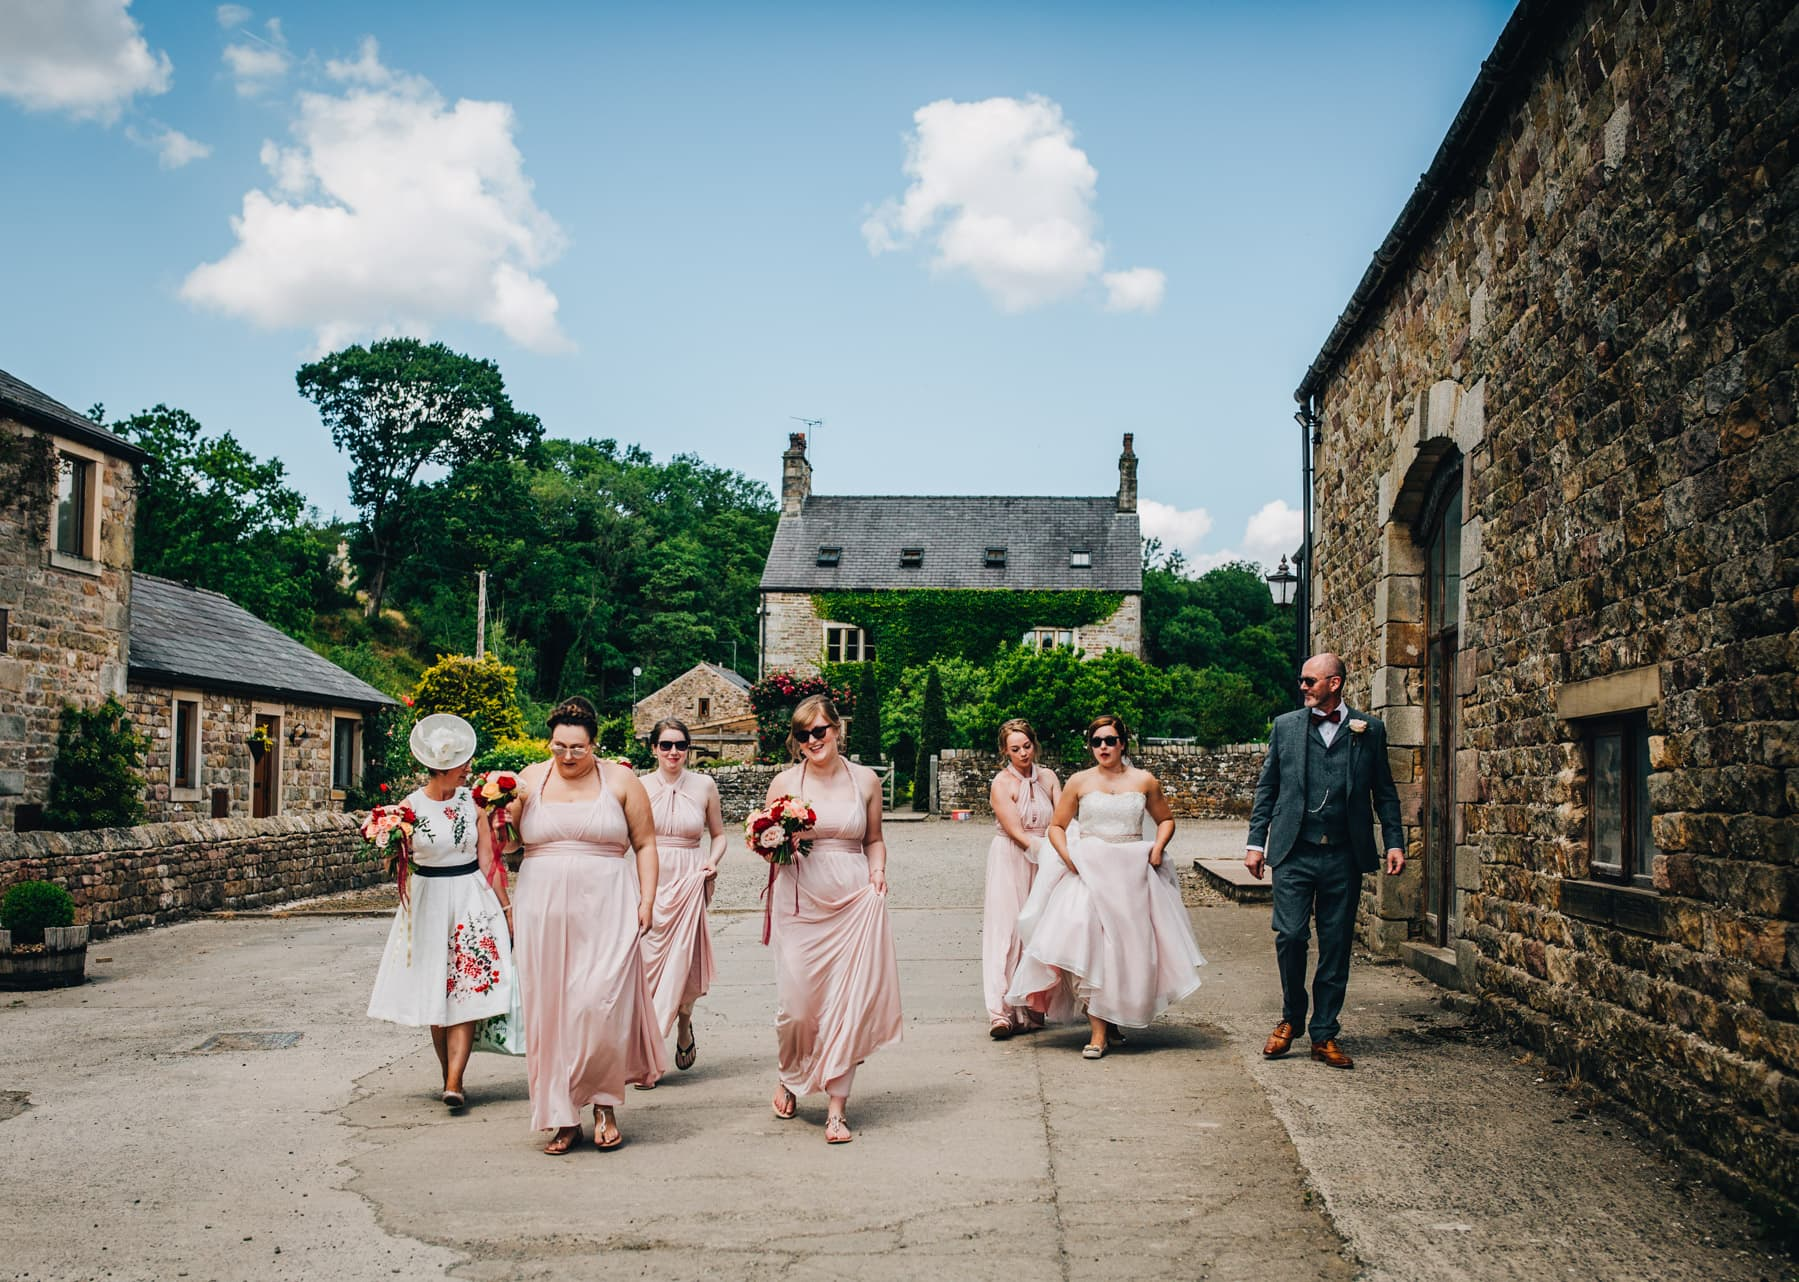 The bride and bridesmaids making their way to the wedding venue, summer wedding, creative wedding photography.